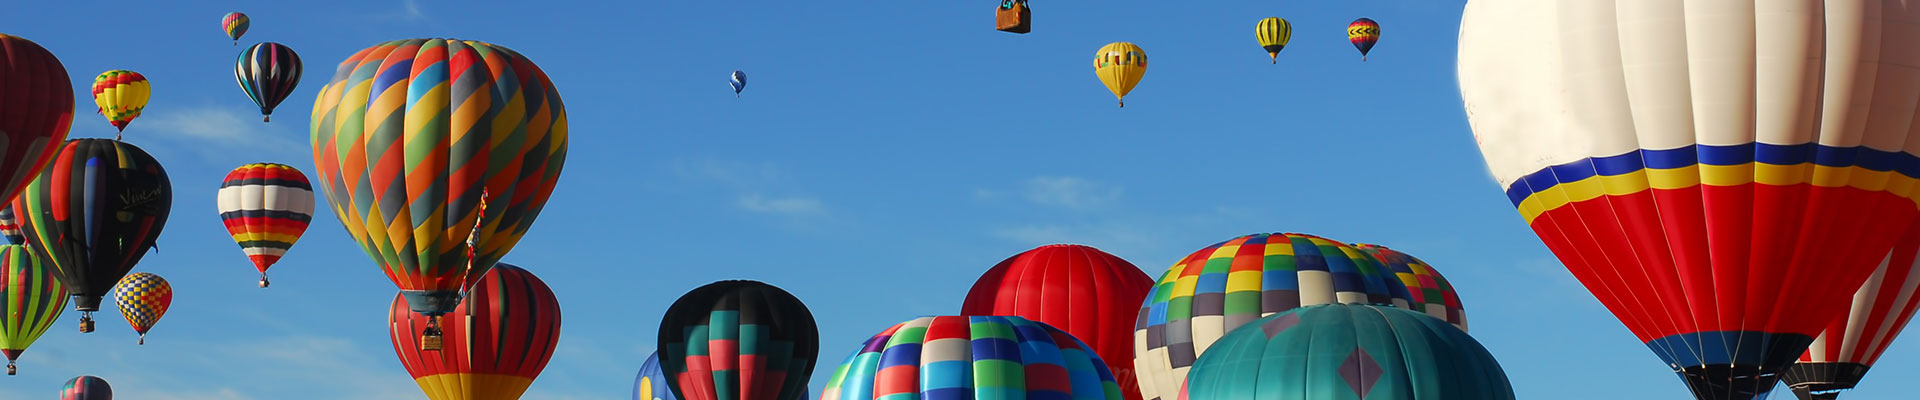 Fantasy RV Tours: 7 Day Albuquerque Balloon Fiesta (07UABW-093021)